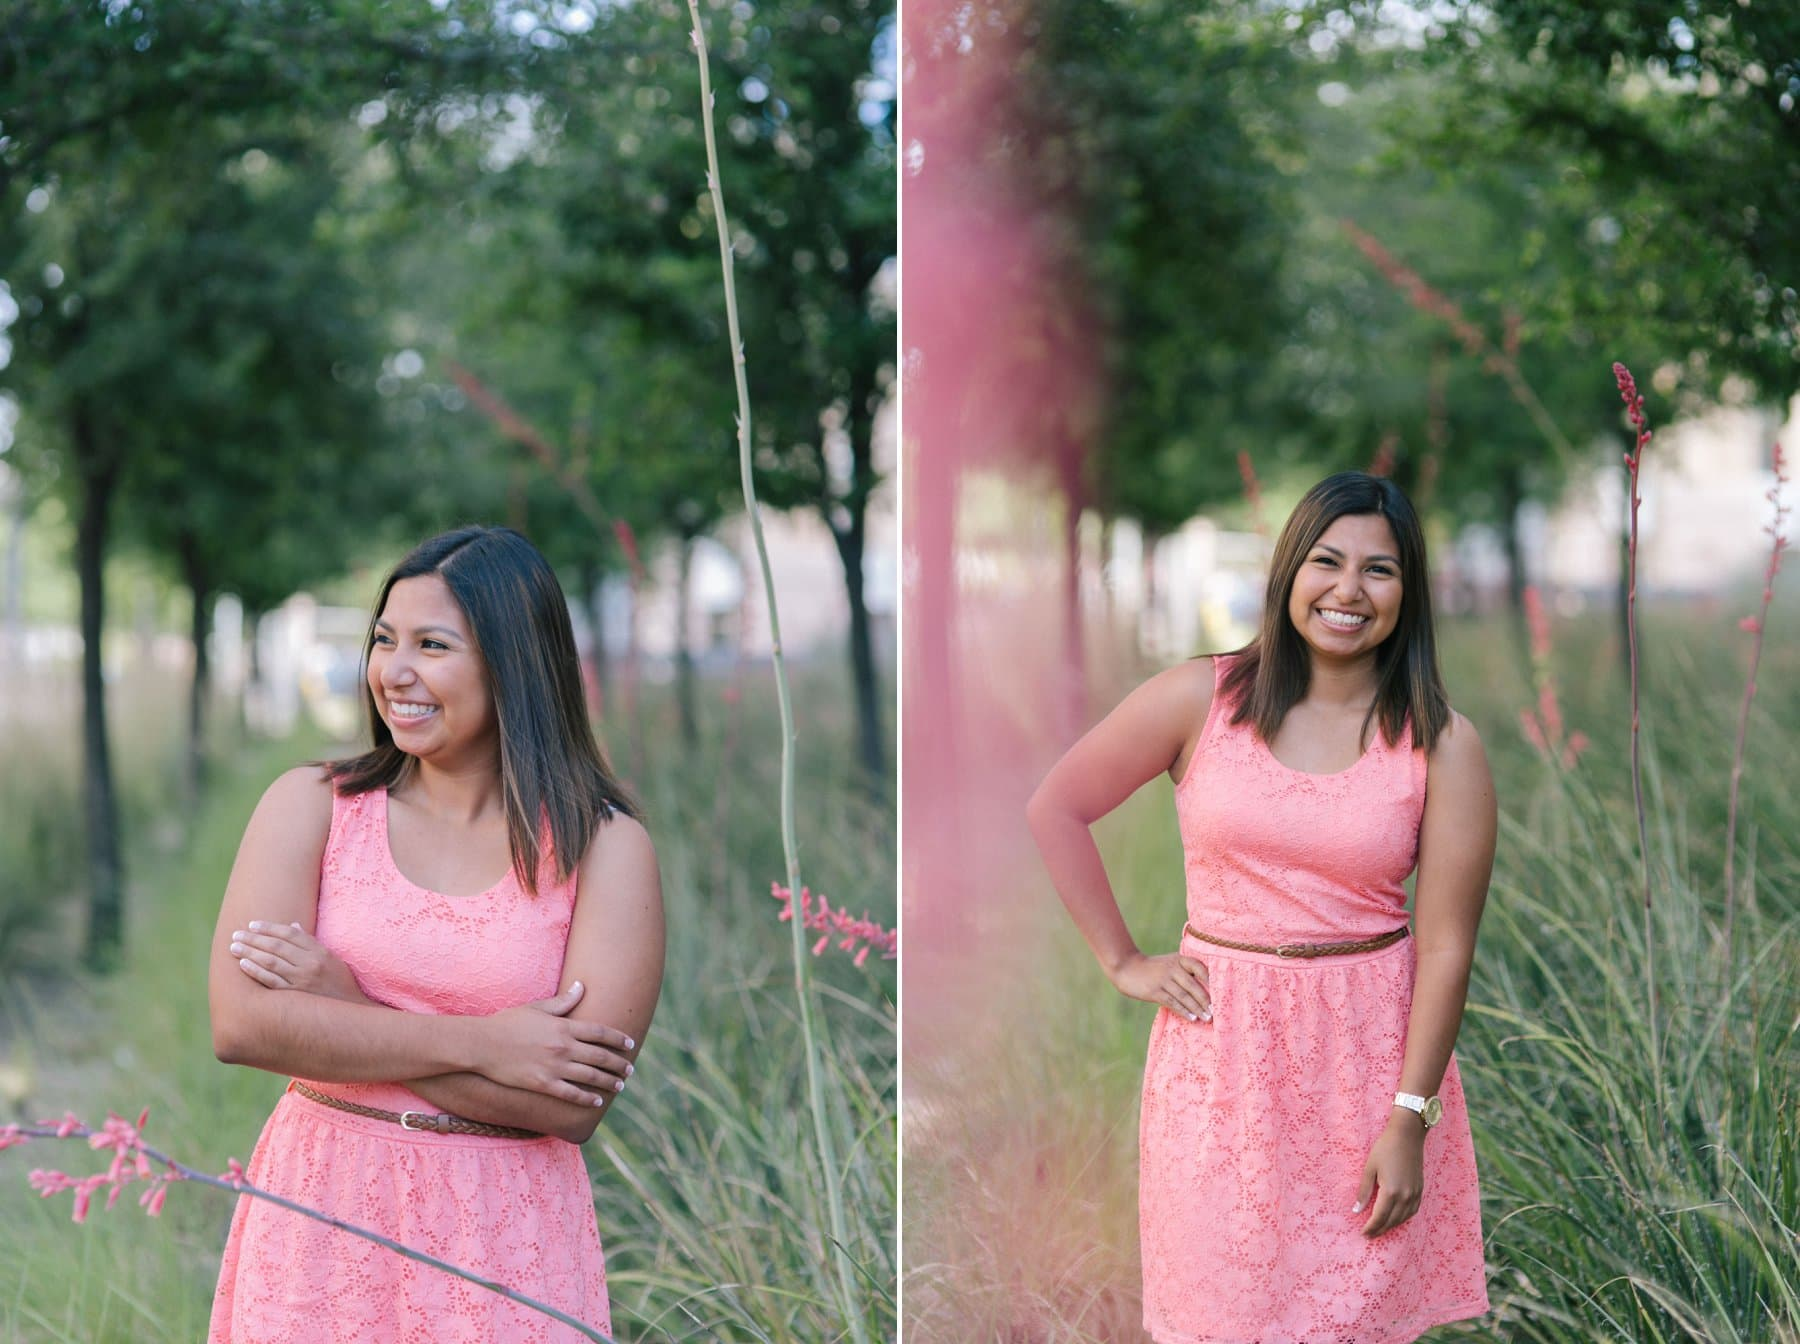 Arizona college senior grad pictures